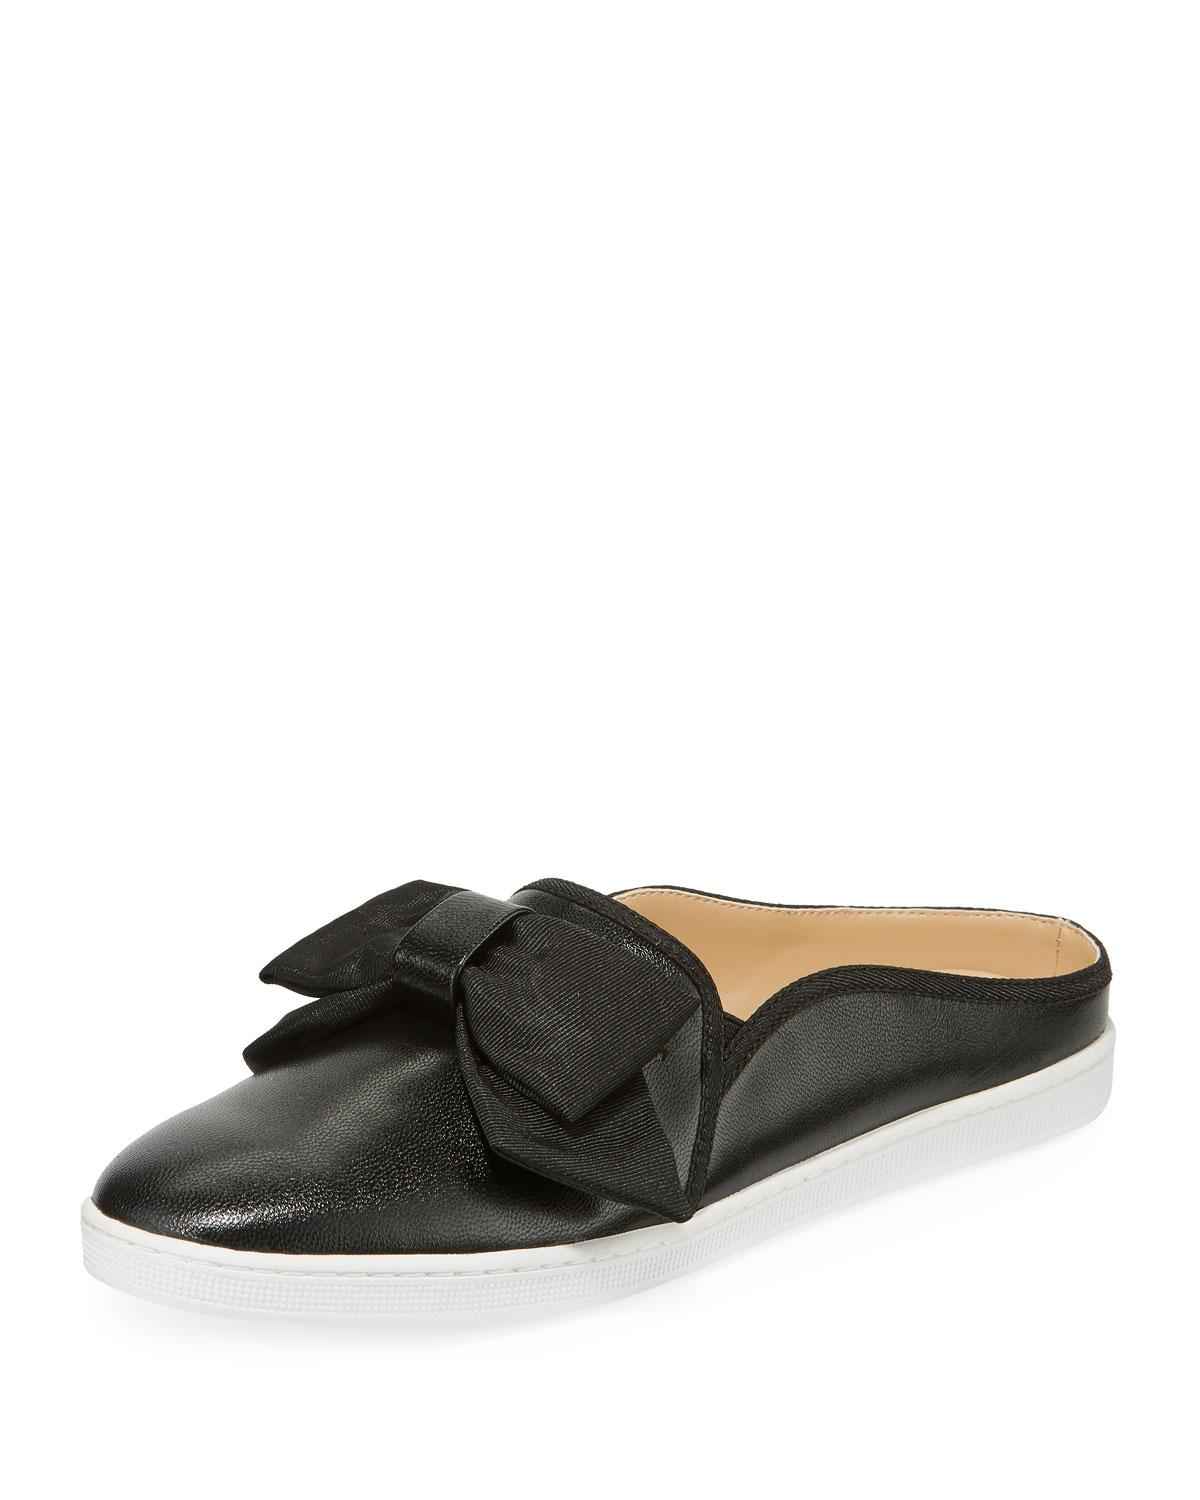 d1bbff22c15 Lyst - Neiman Marcus Courtenay Leather Bow Mule Sneakers in Black